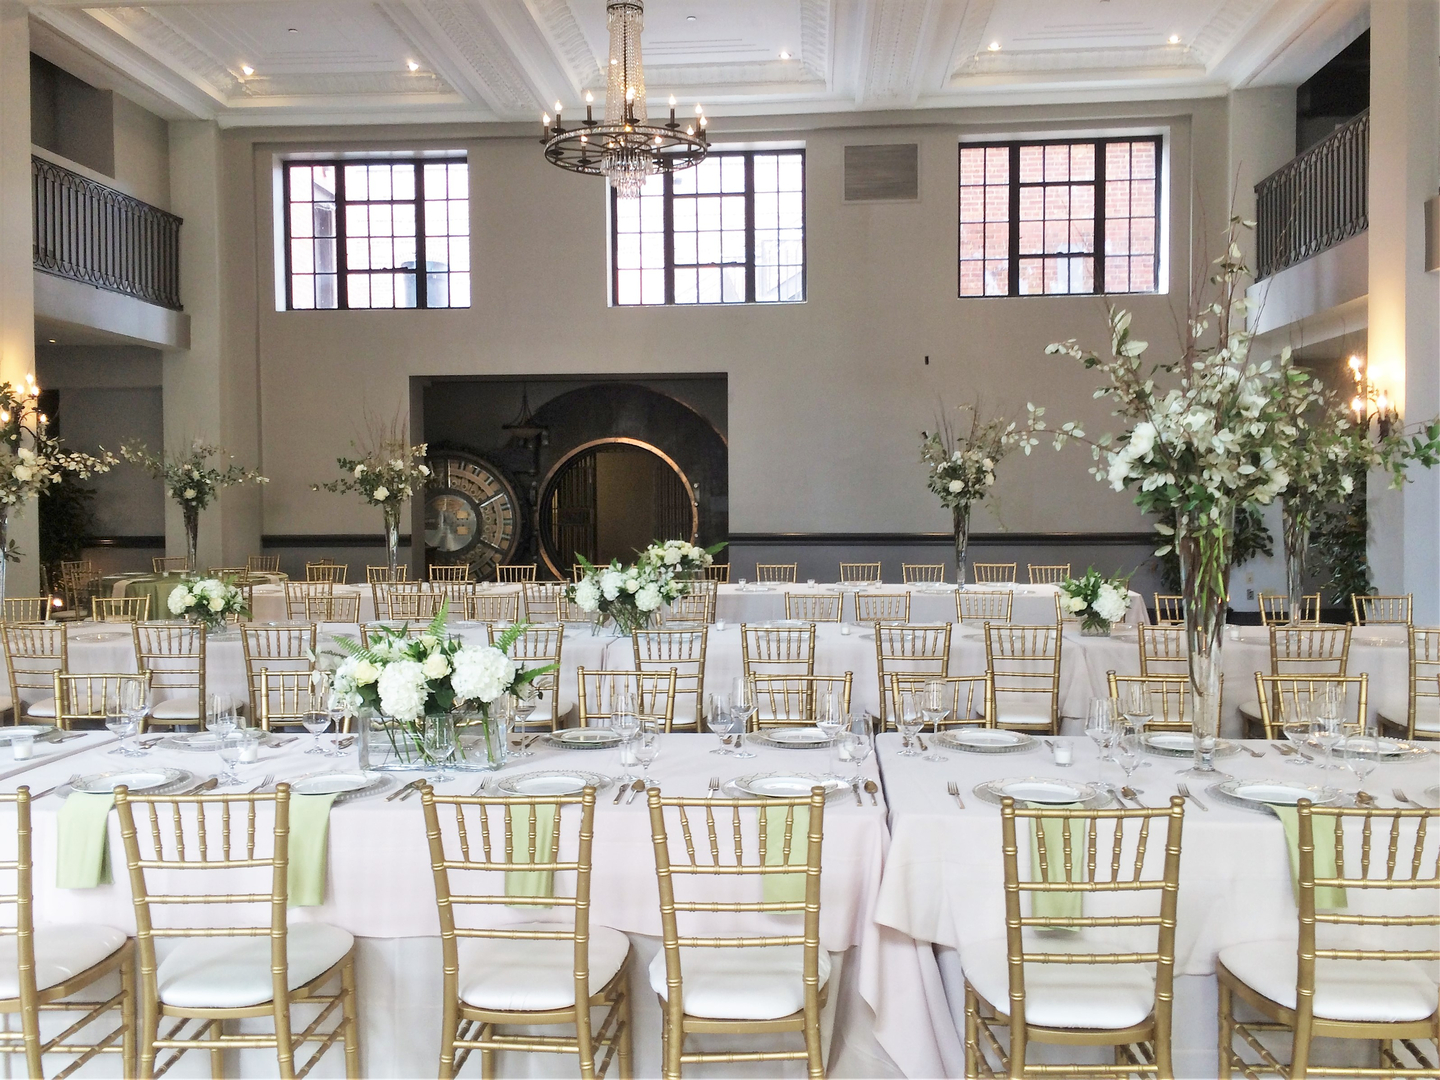 Wedding reception meetings nita patel columbia sc a historic event venue in the heart of downtown columbia junglespirit Image collections